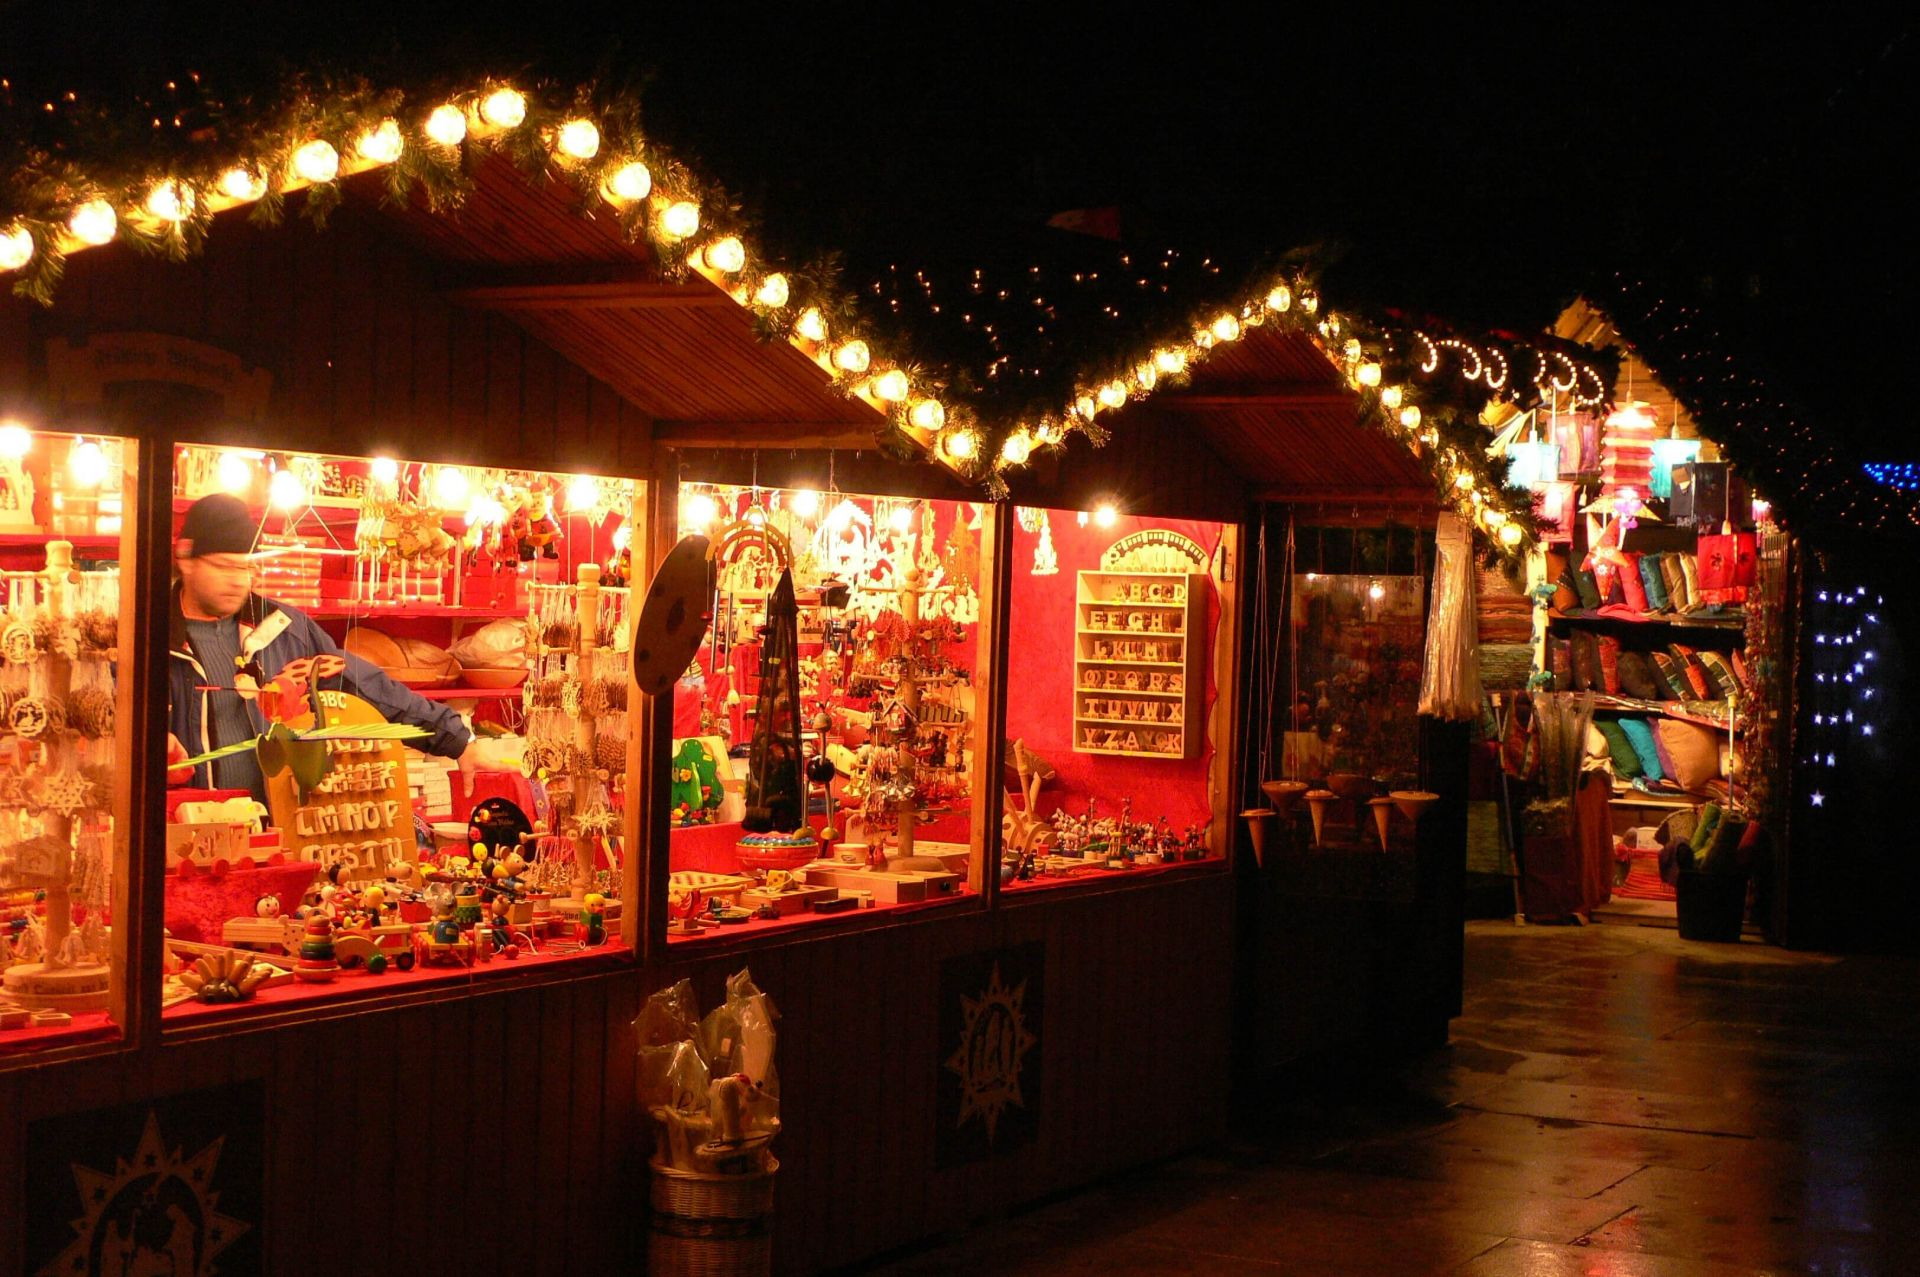 London Christmas Market At South Bank by Heather Cowper